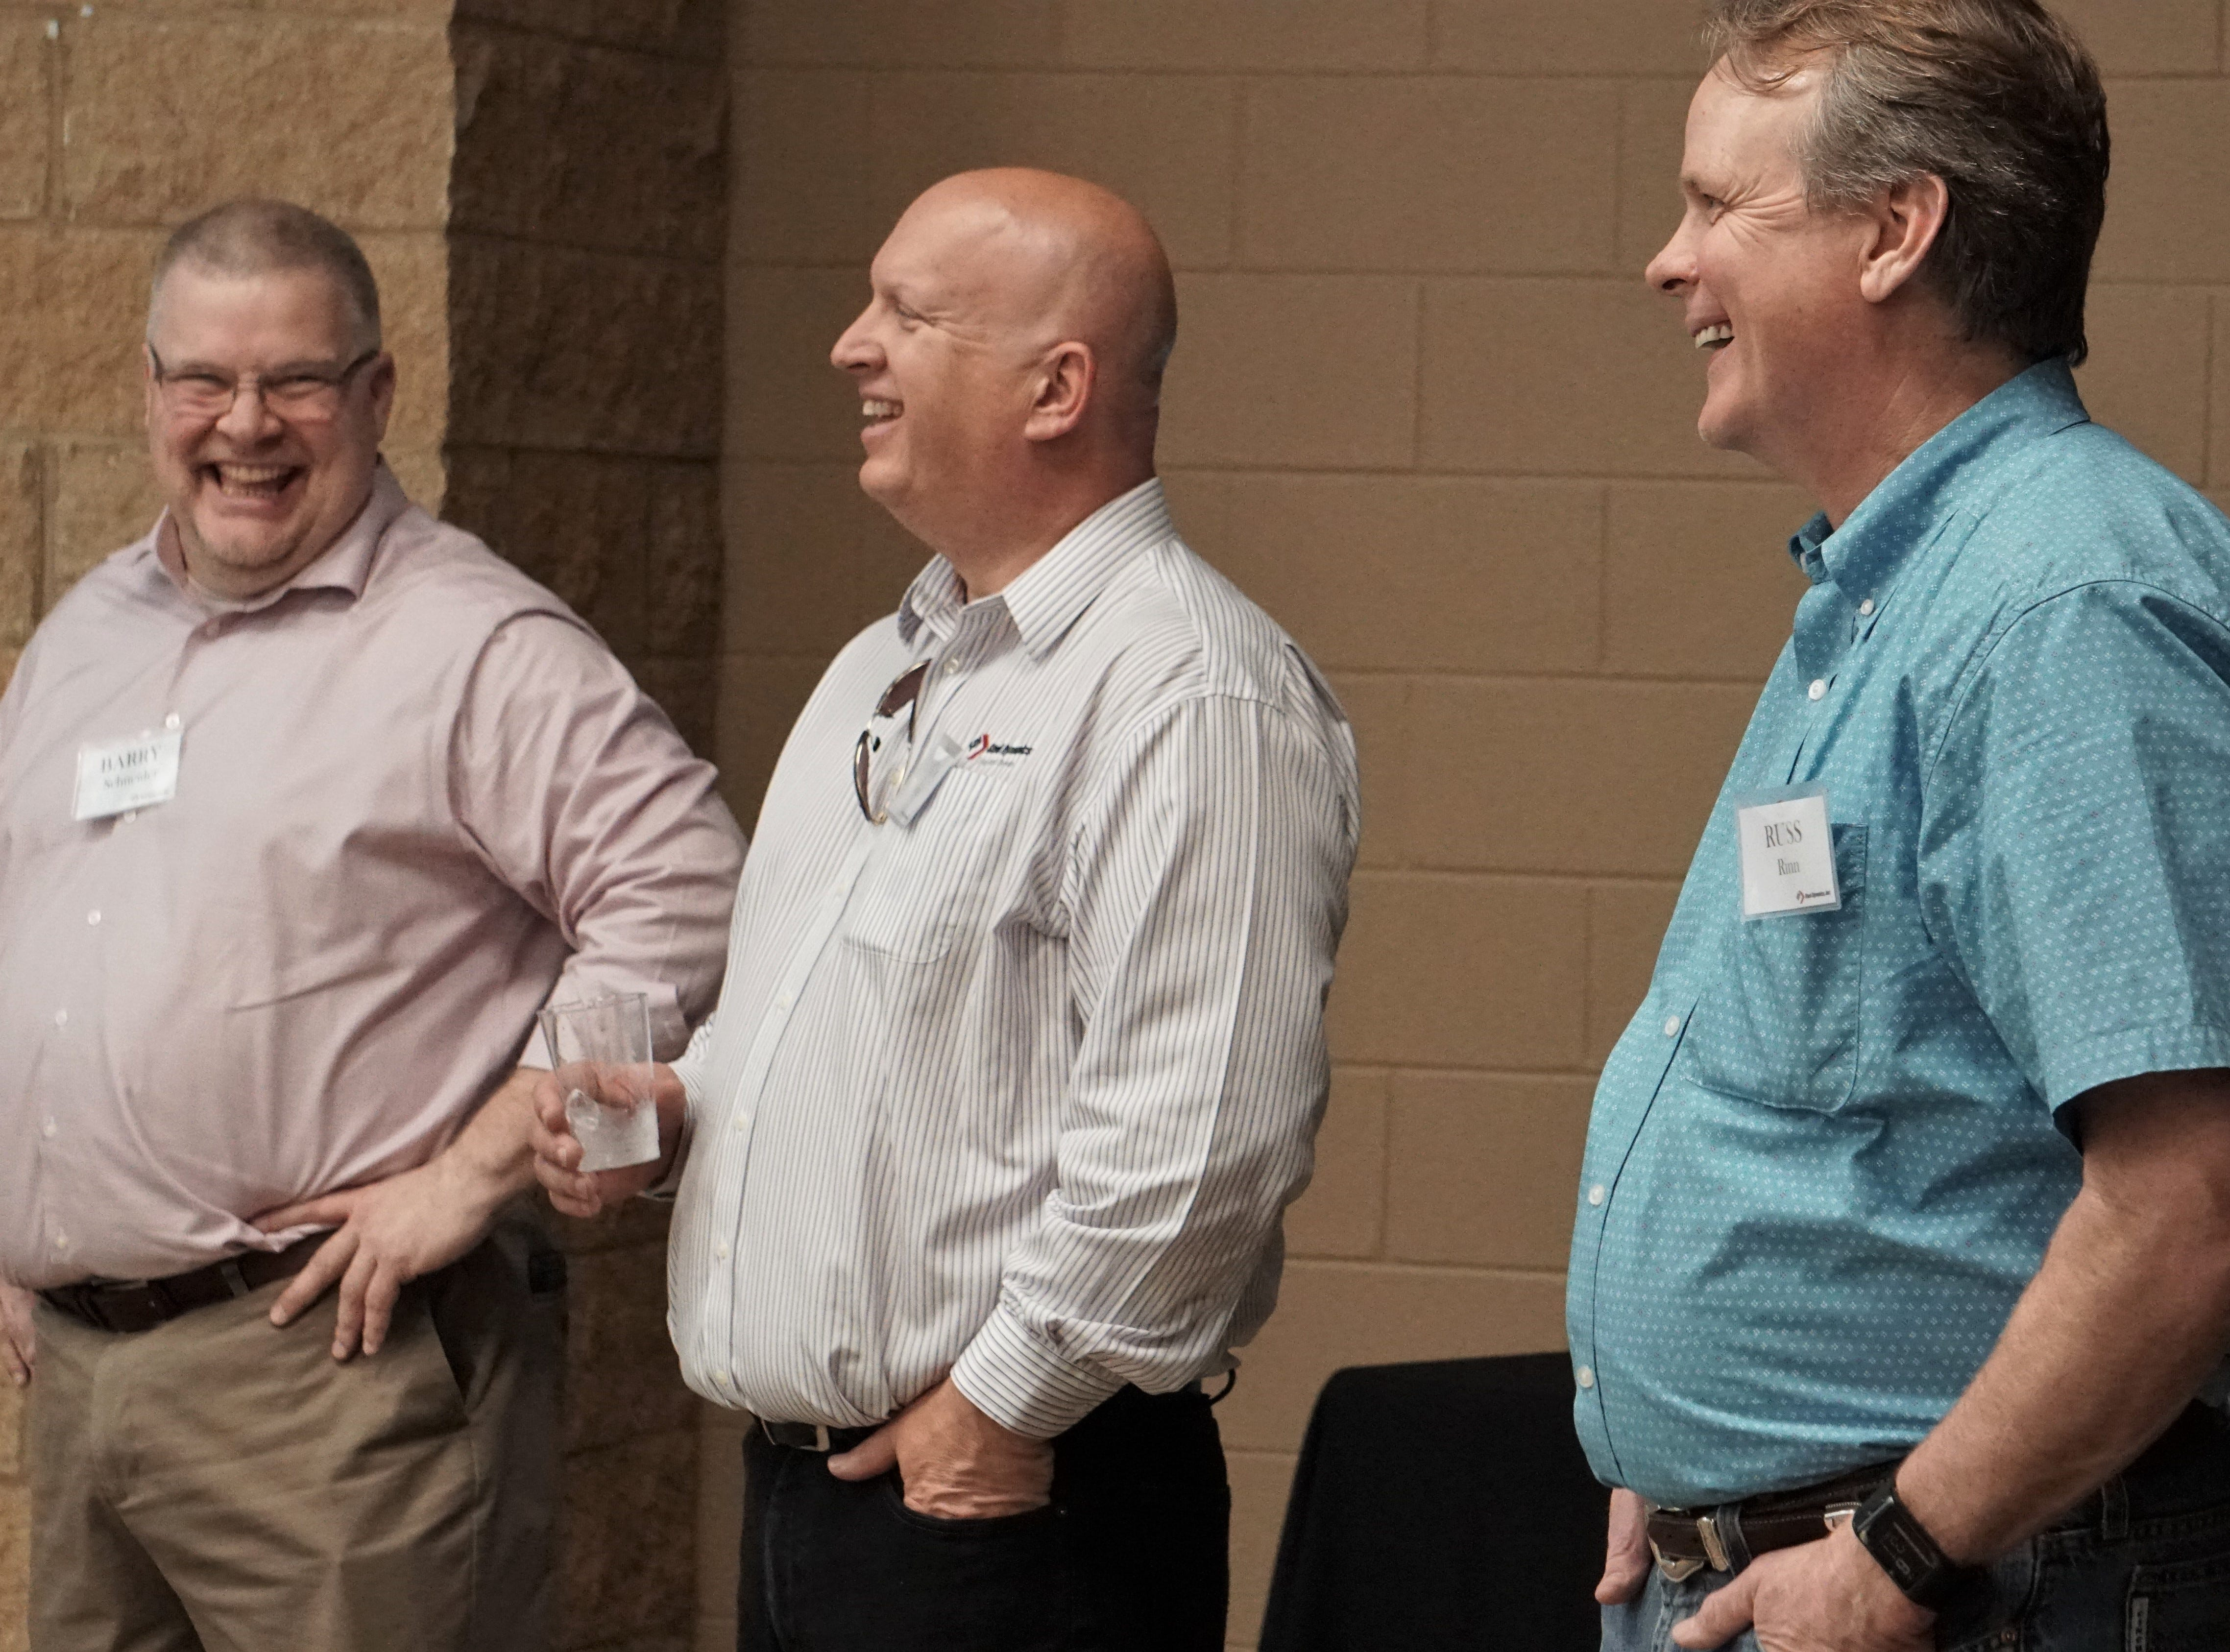 From left are Steel Dynamics executives Barry Schneider, Glenn Pushis and Russ Rinn as they listen to the company's CEO Mark Millett speak during a meet and greet in Sinton on March 14, 2019.